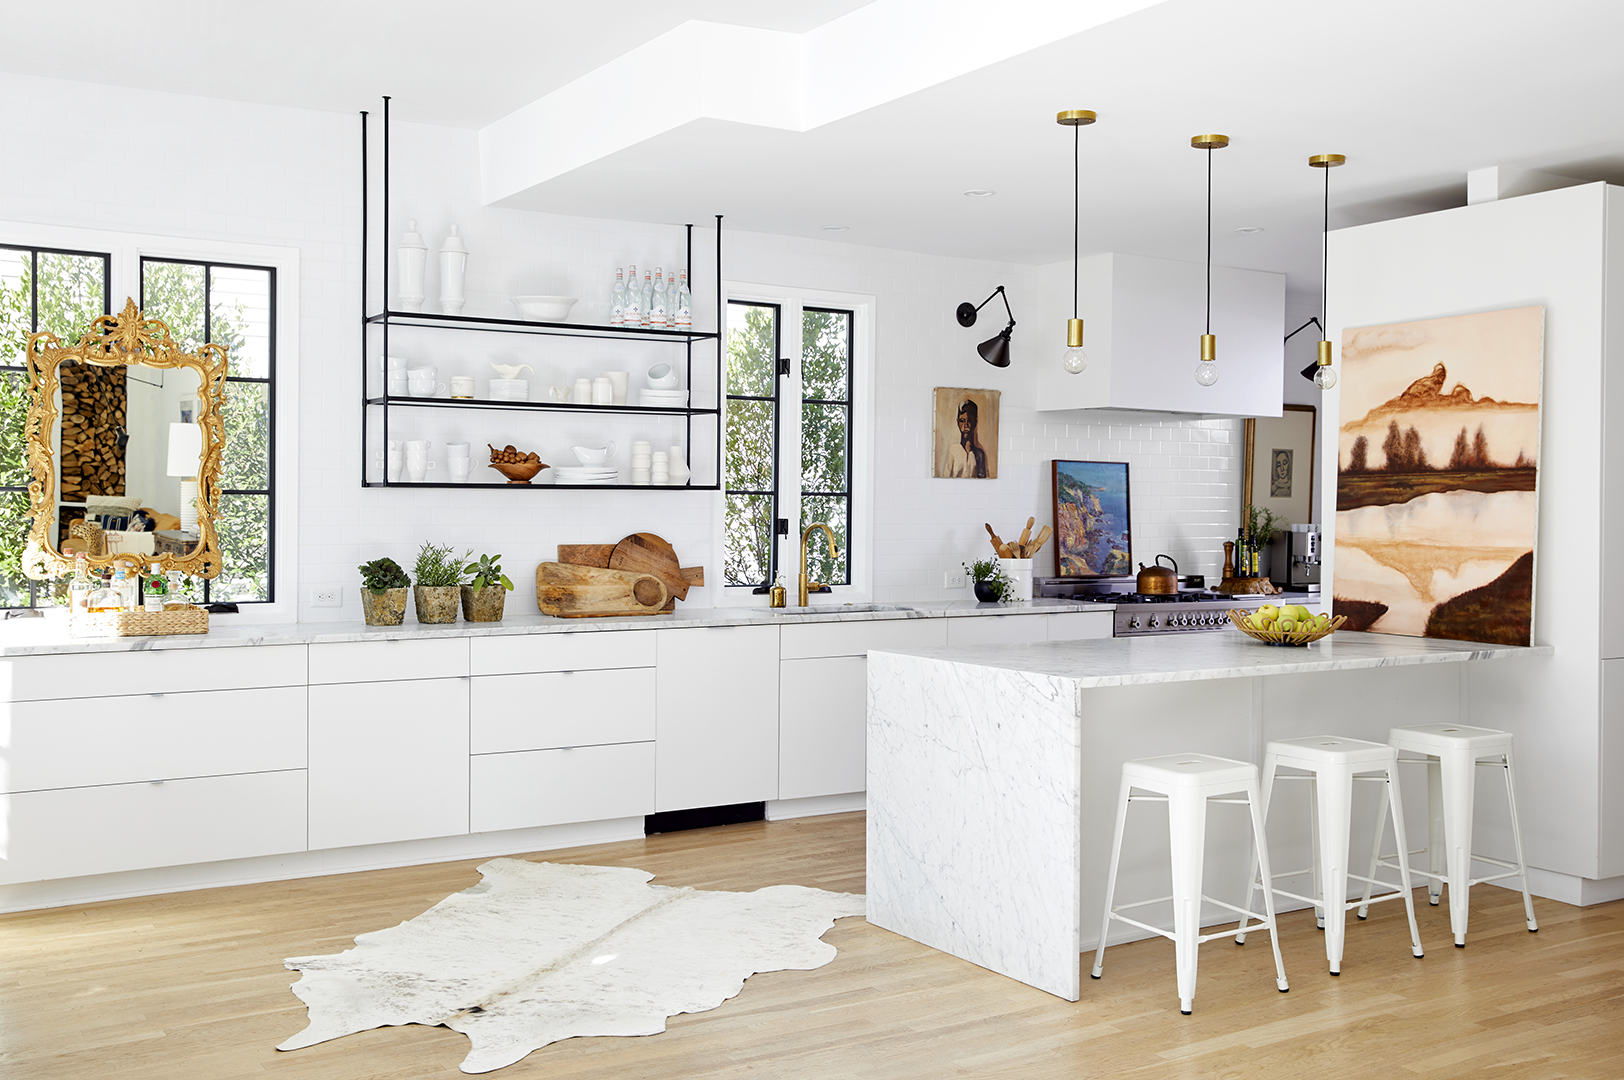 steel and glass shelves in open modern kitchen